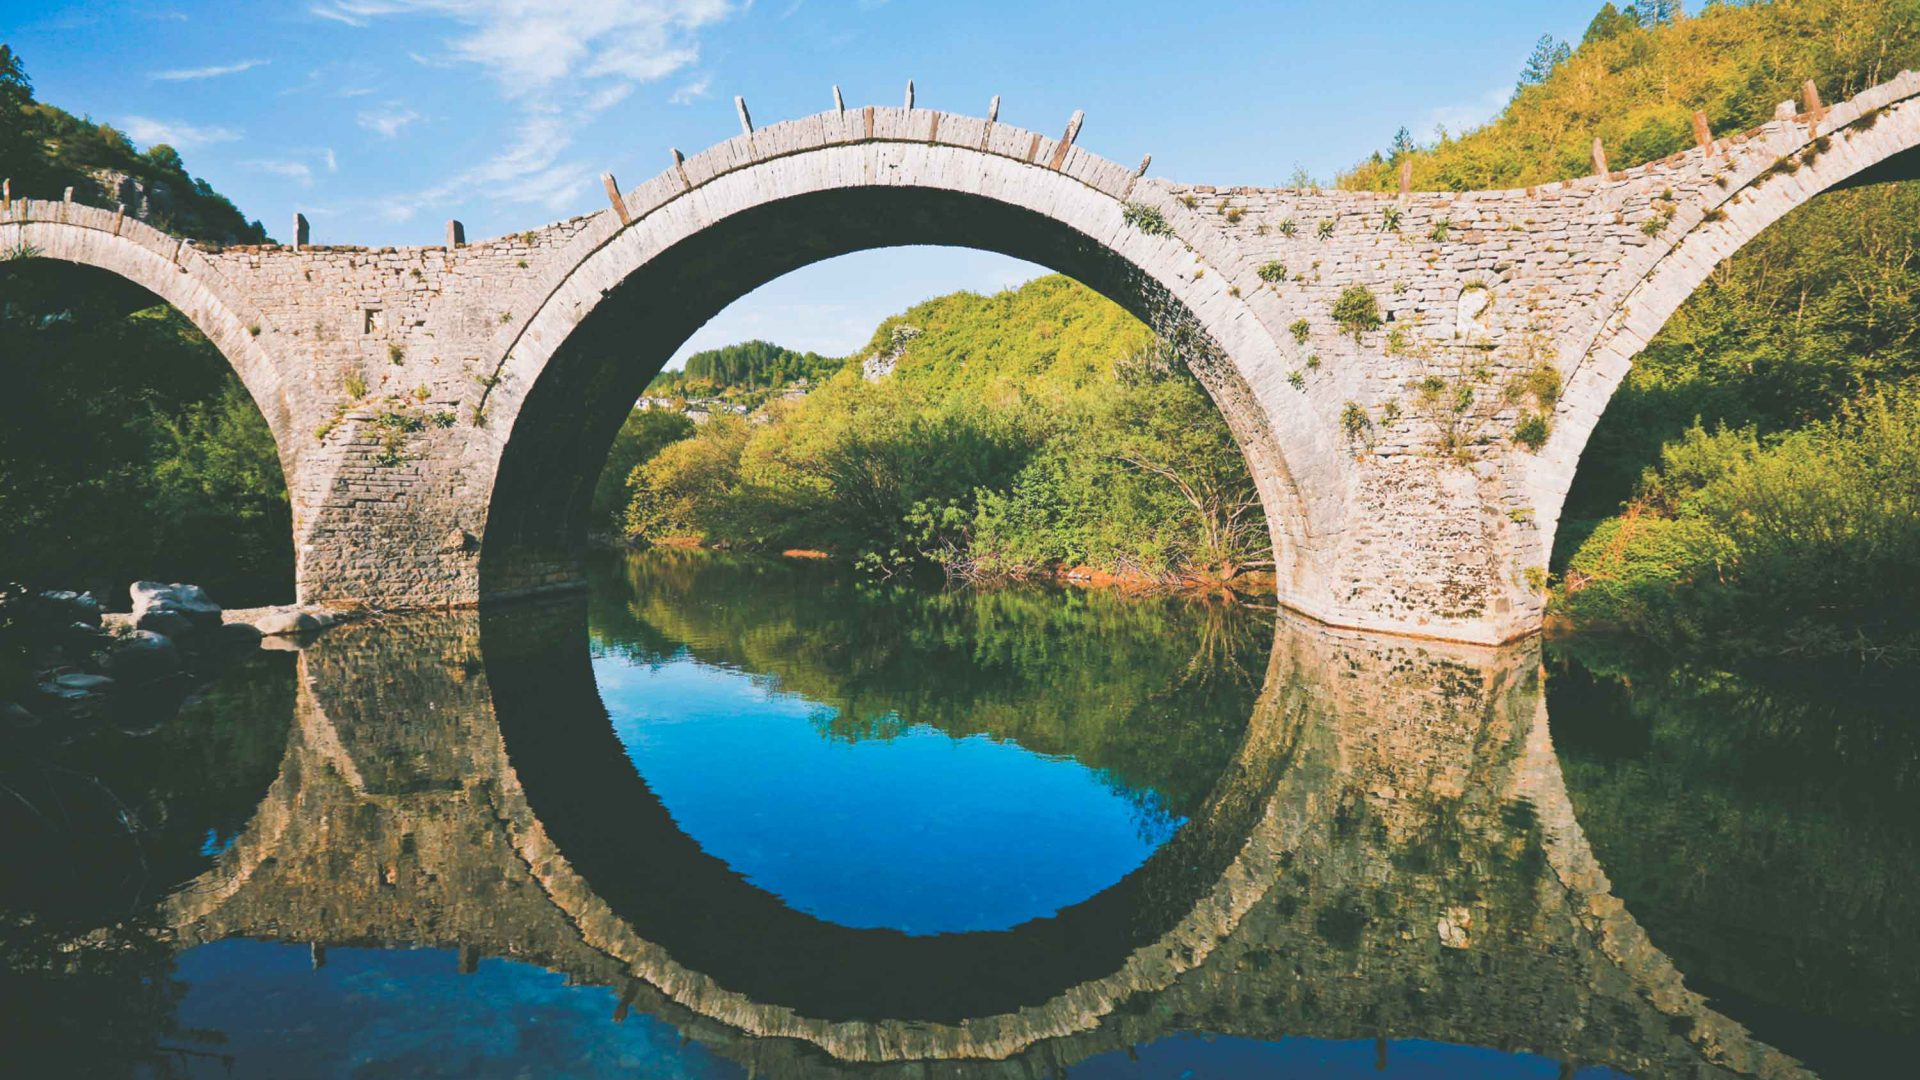 Zagori's three-arch bridge took 51 years to build since the river washed it away every winter.